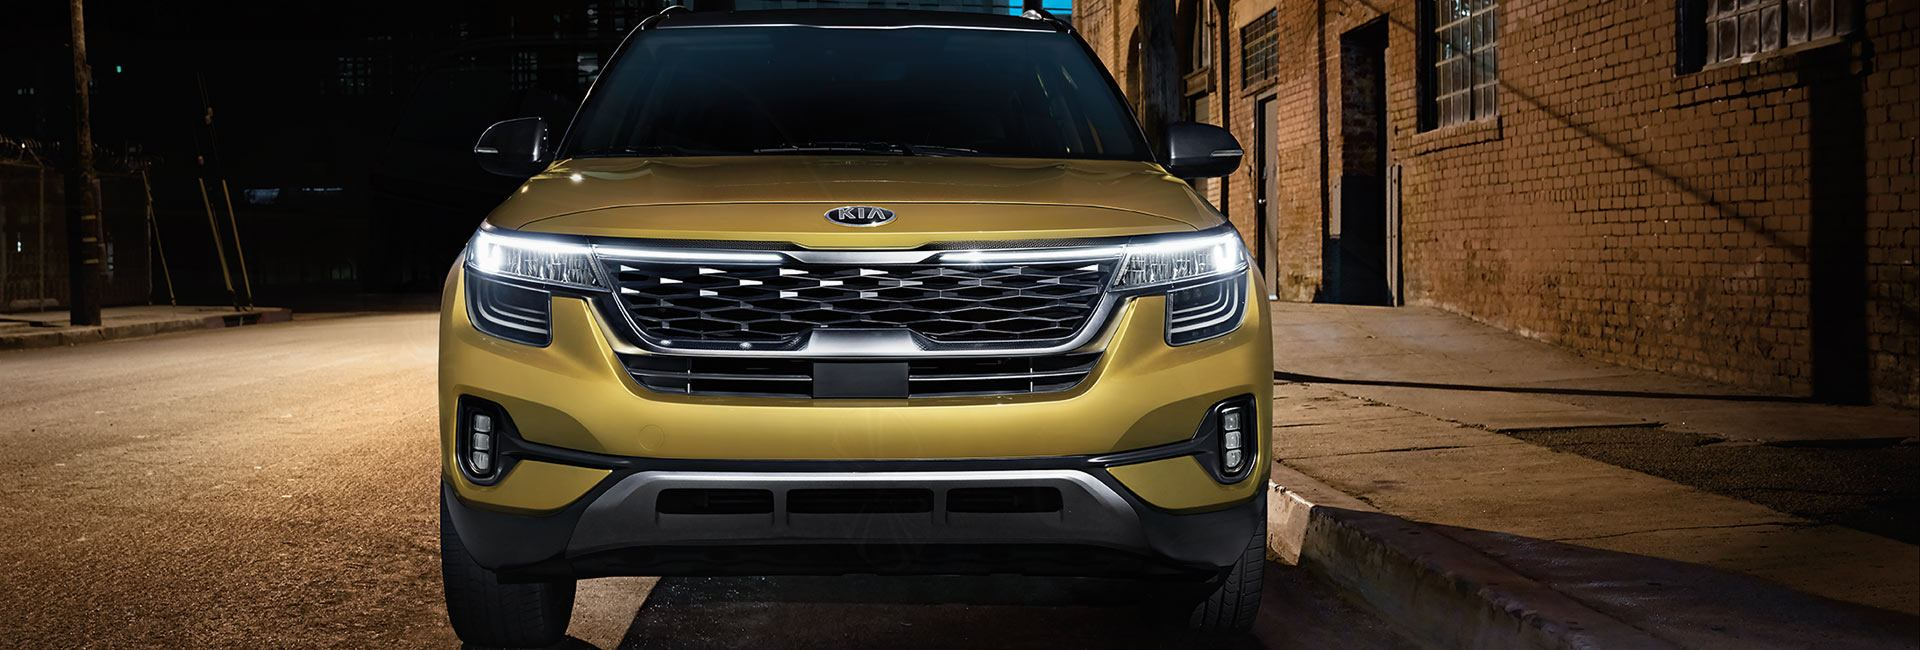 Picture of the 2021 Kia Seltos for sale at Spitzer Kia Cleveland